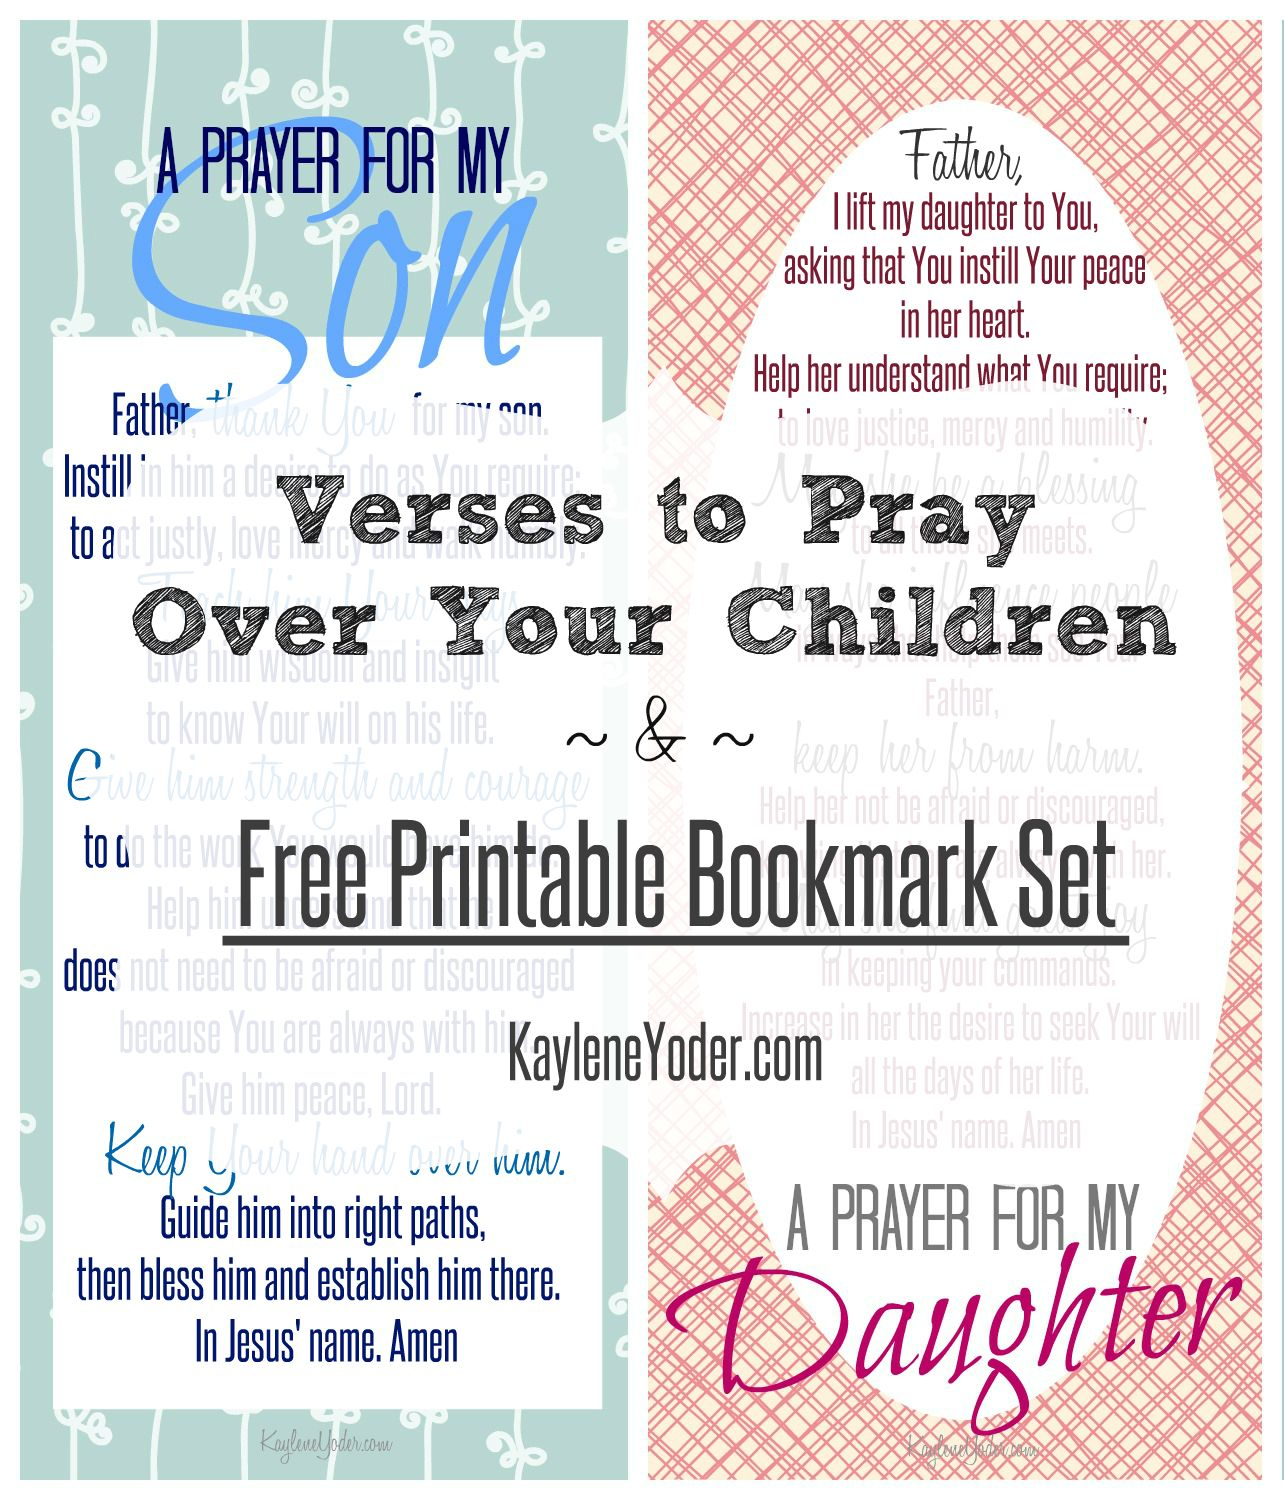 free printable bookmark set of prayers for son, daughter and parents